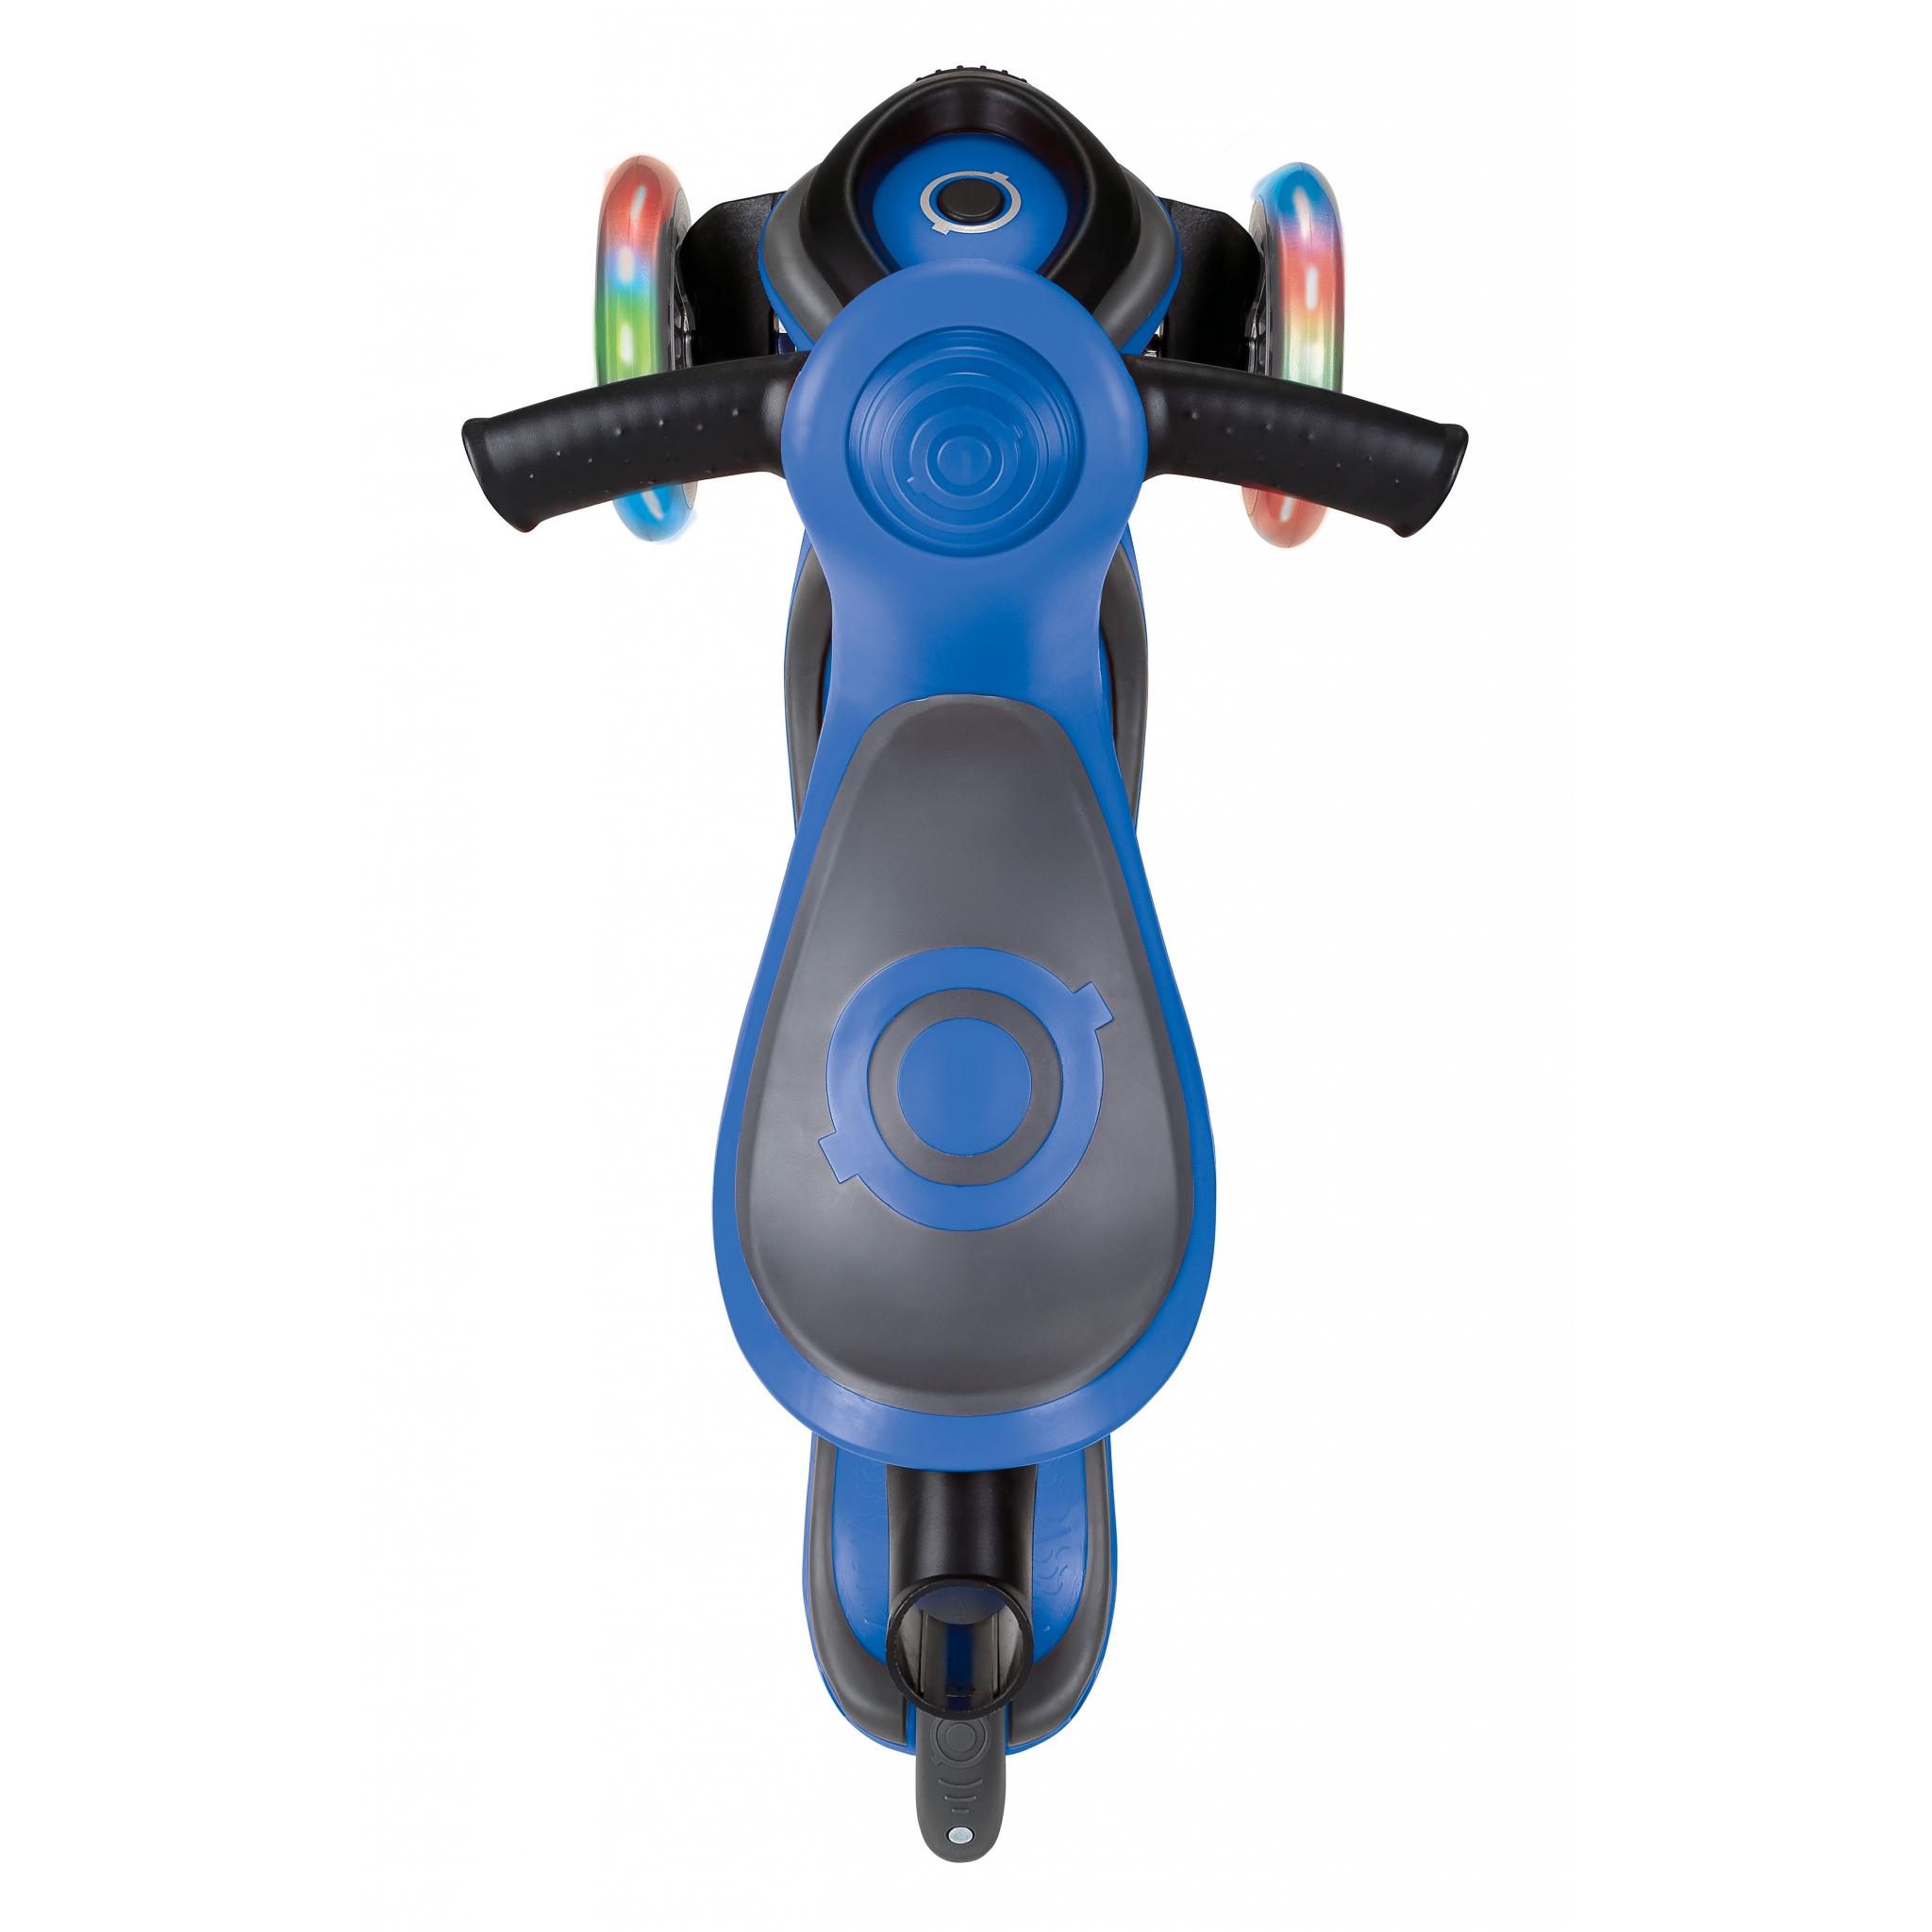 GO-UP-COMFORT-LIGHTS-scooter-with-seat-extra-wide-seat-for-maximum-comfort-navy-blue